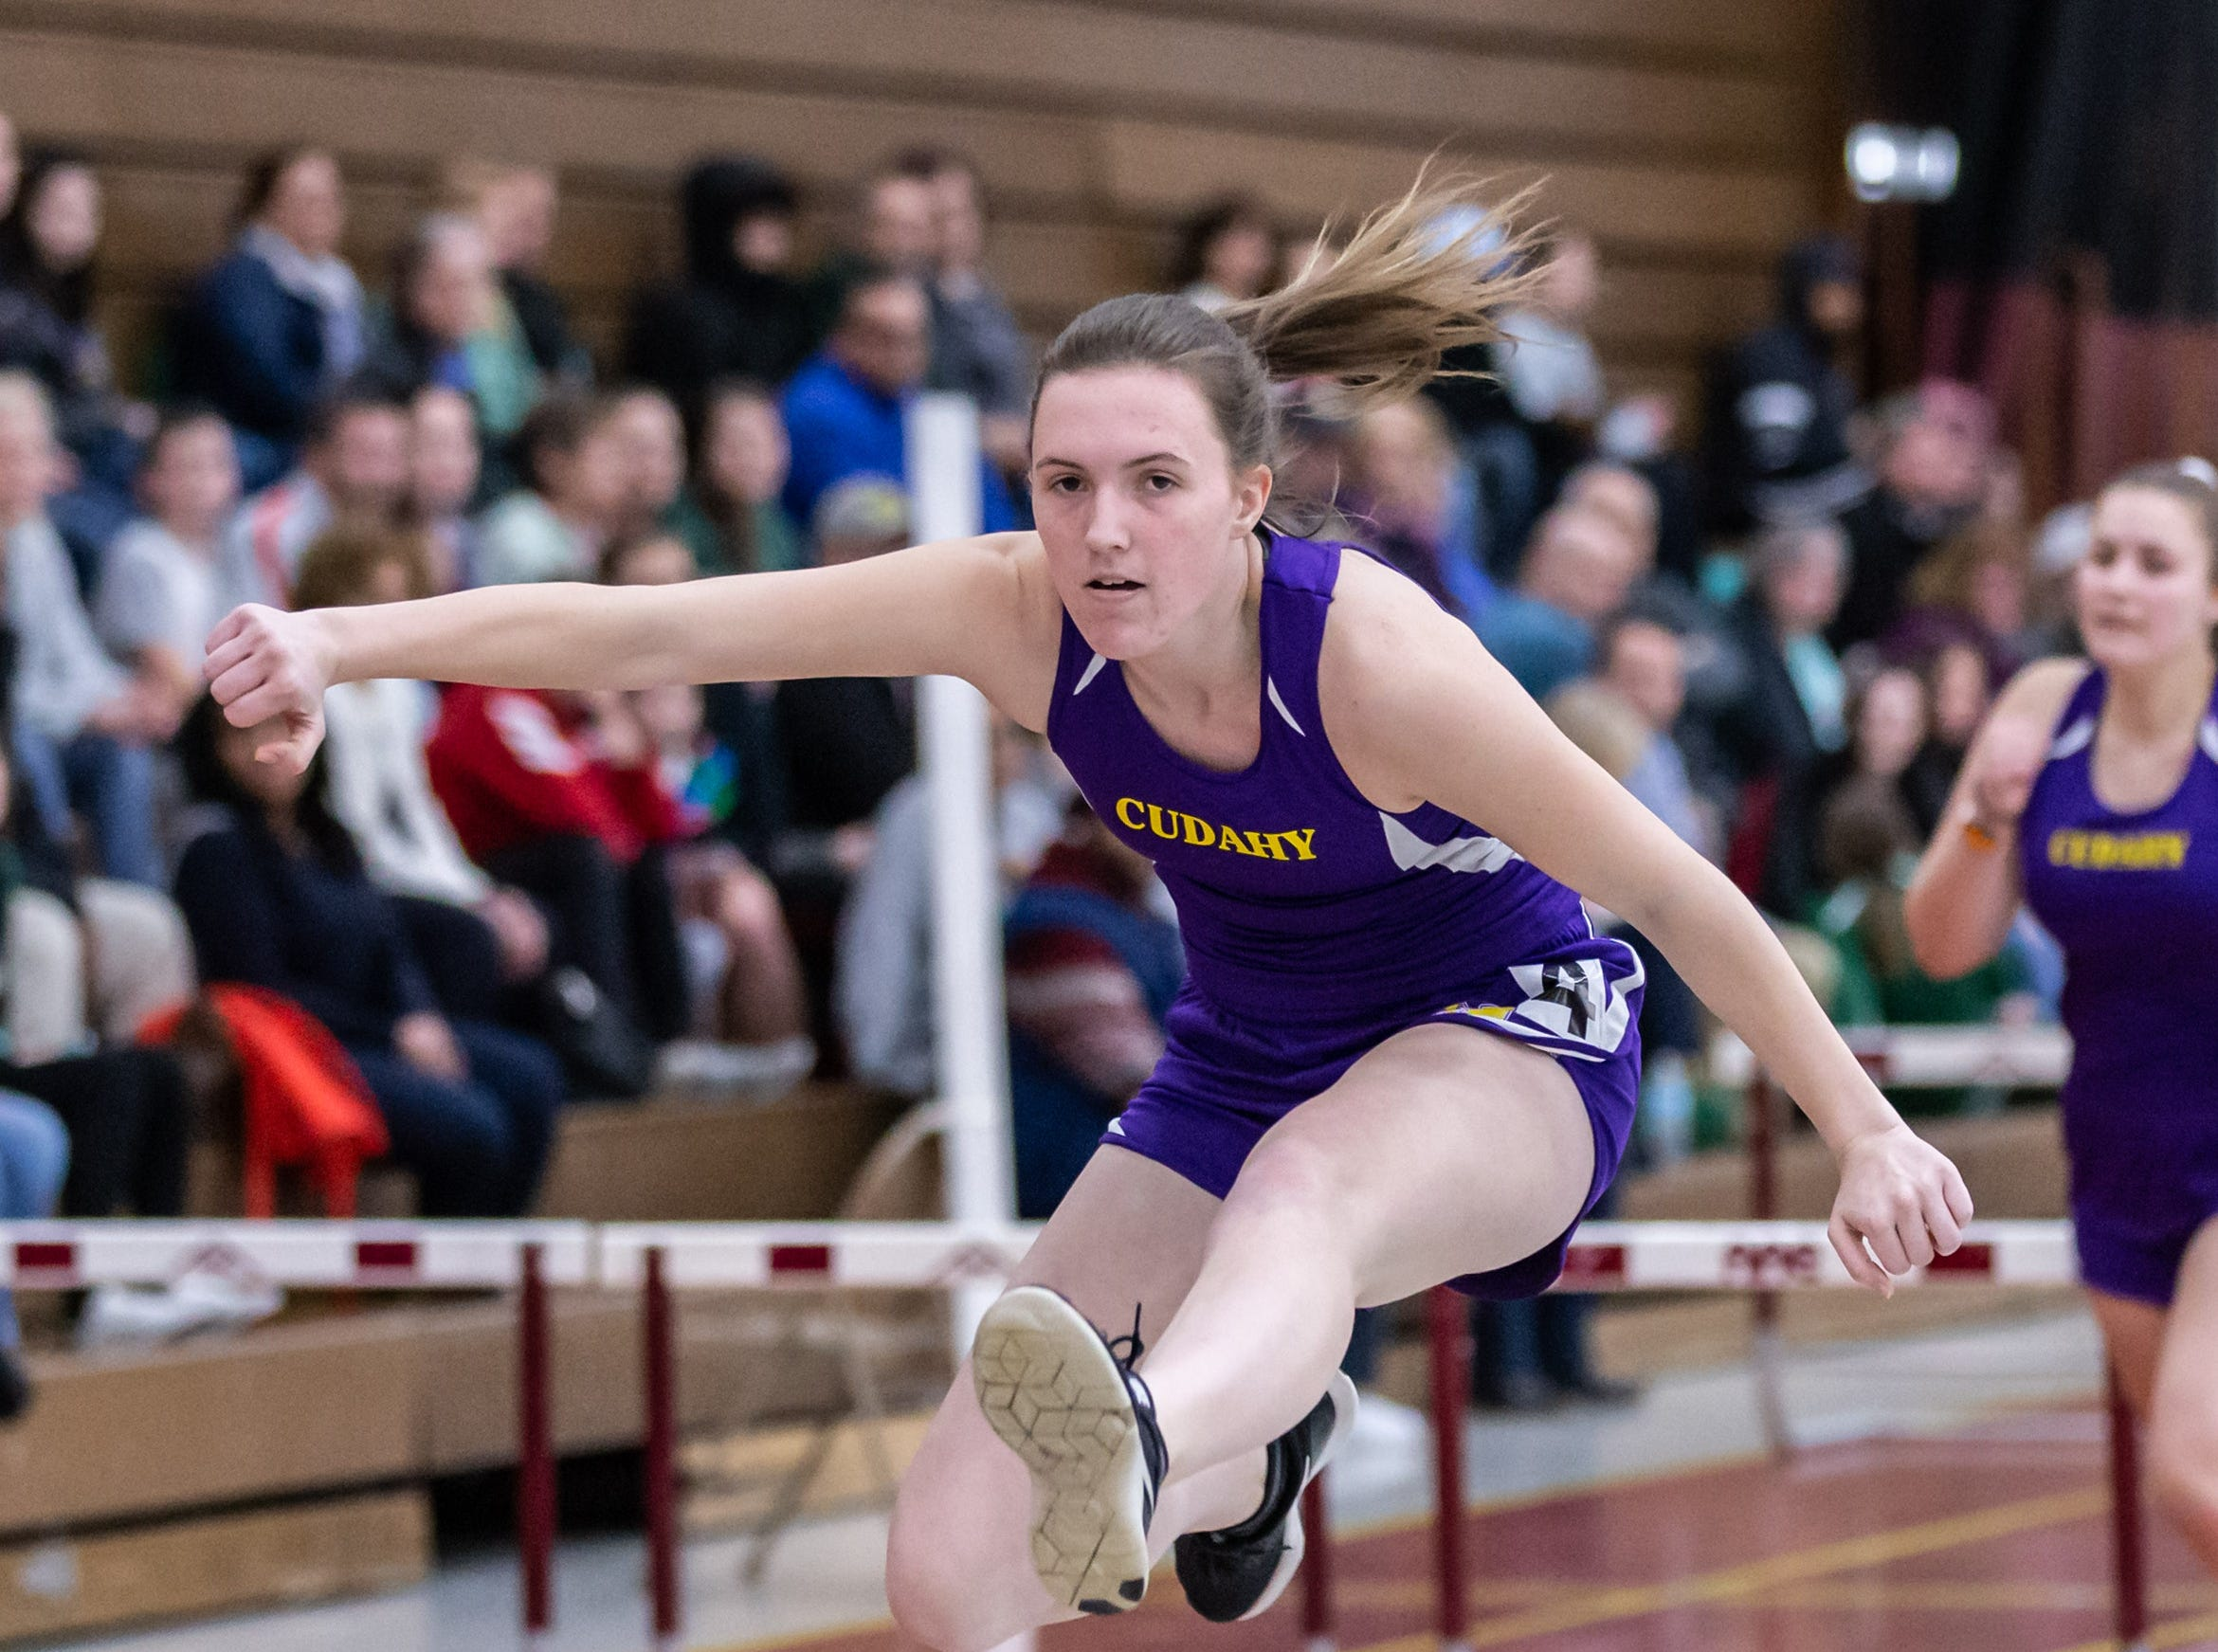 Cudahy's Laura Zager competes in the 55 meter low hurdles at the Reinhard Bulldog Relays hosted by West Allis Central on Friday, March 15, 2019.